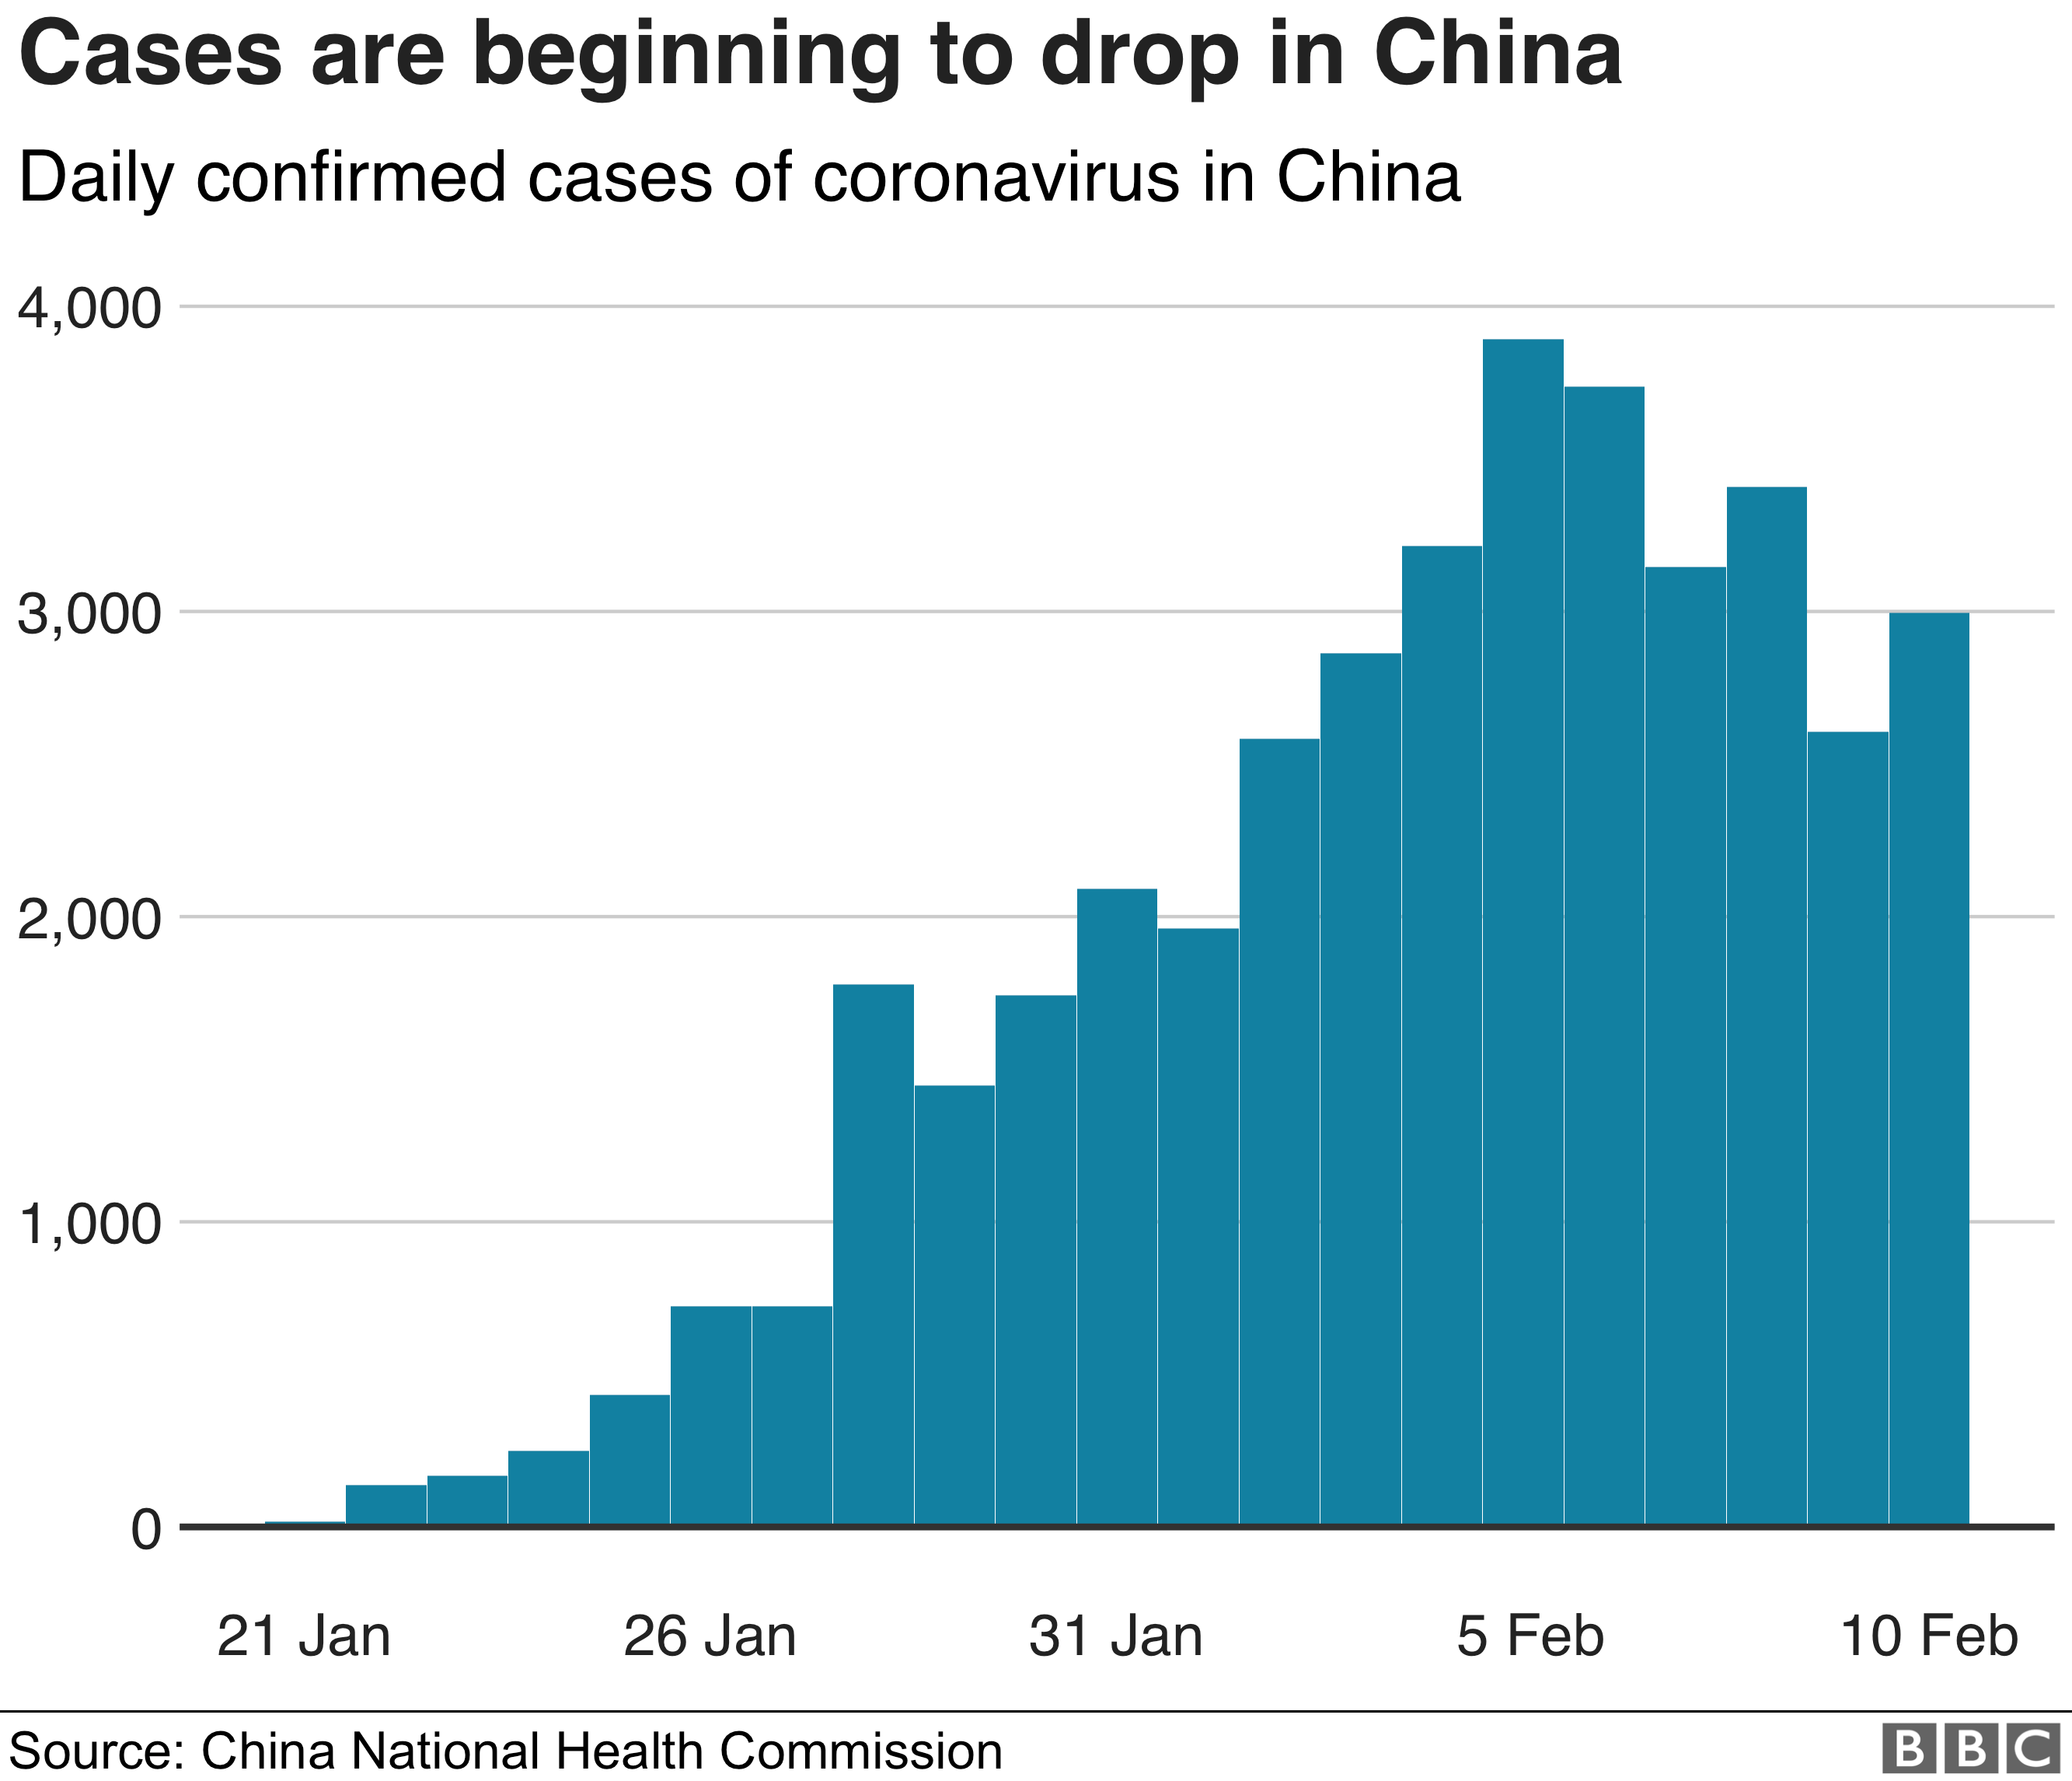 Chart showing how daily confirmed cases of coronavirus in China are beginning to drop from a peak on 5 Feb